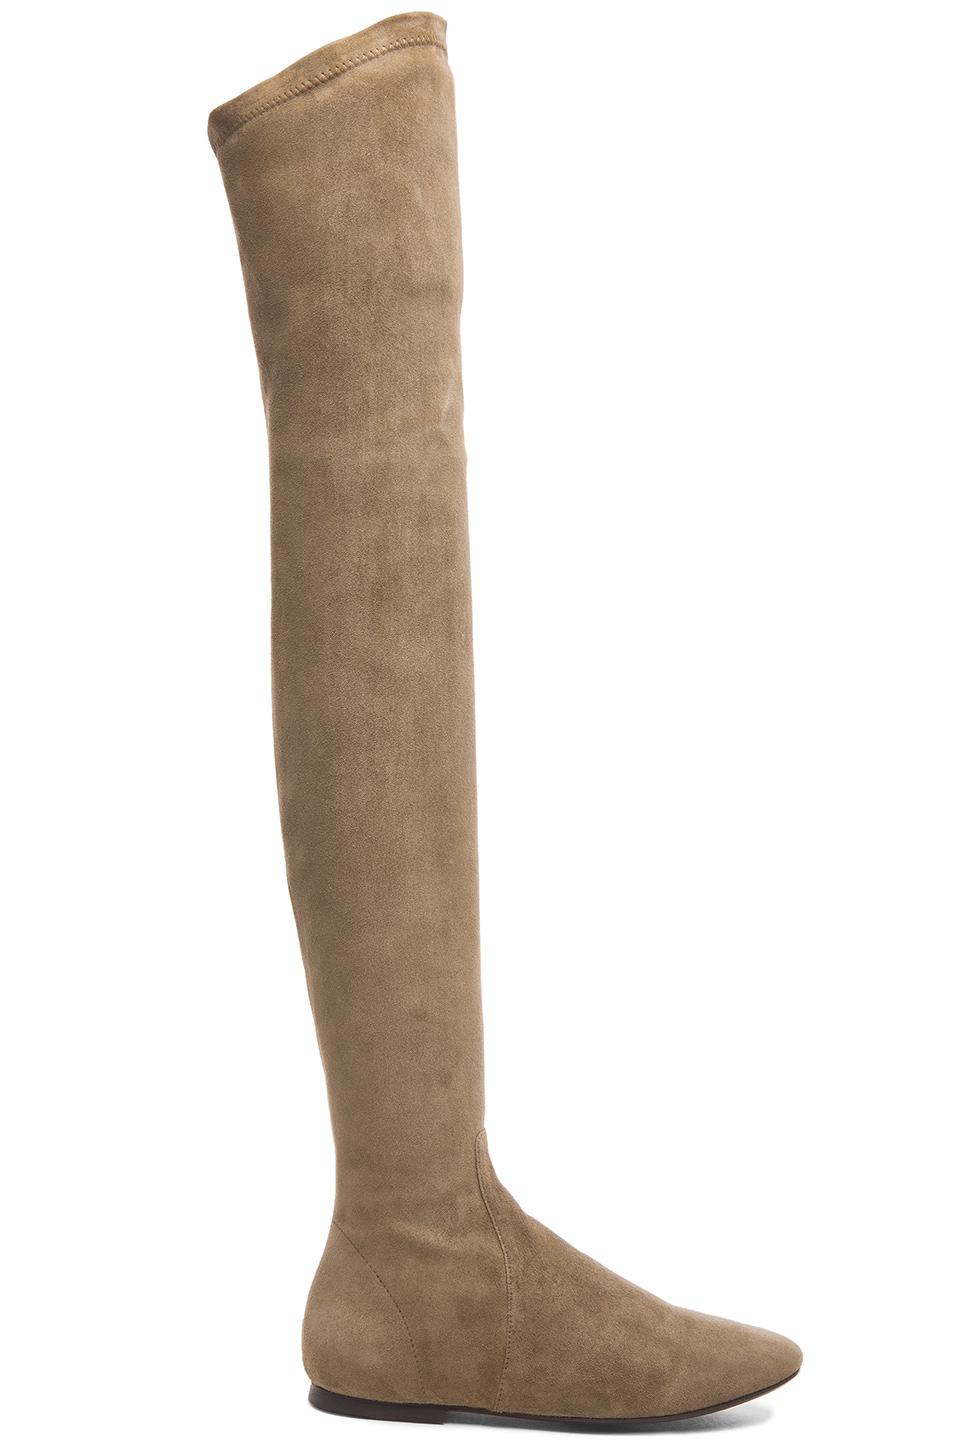 Image 1 of Isabel Marant Etoile Brenna Over the Knee Suede Boots in Taupe